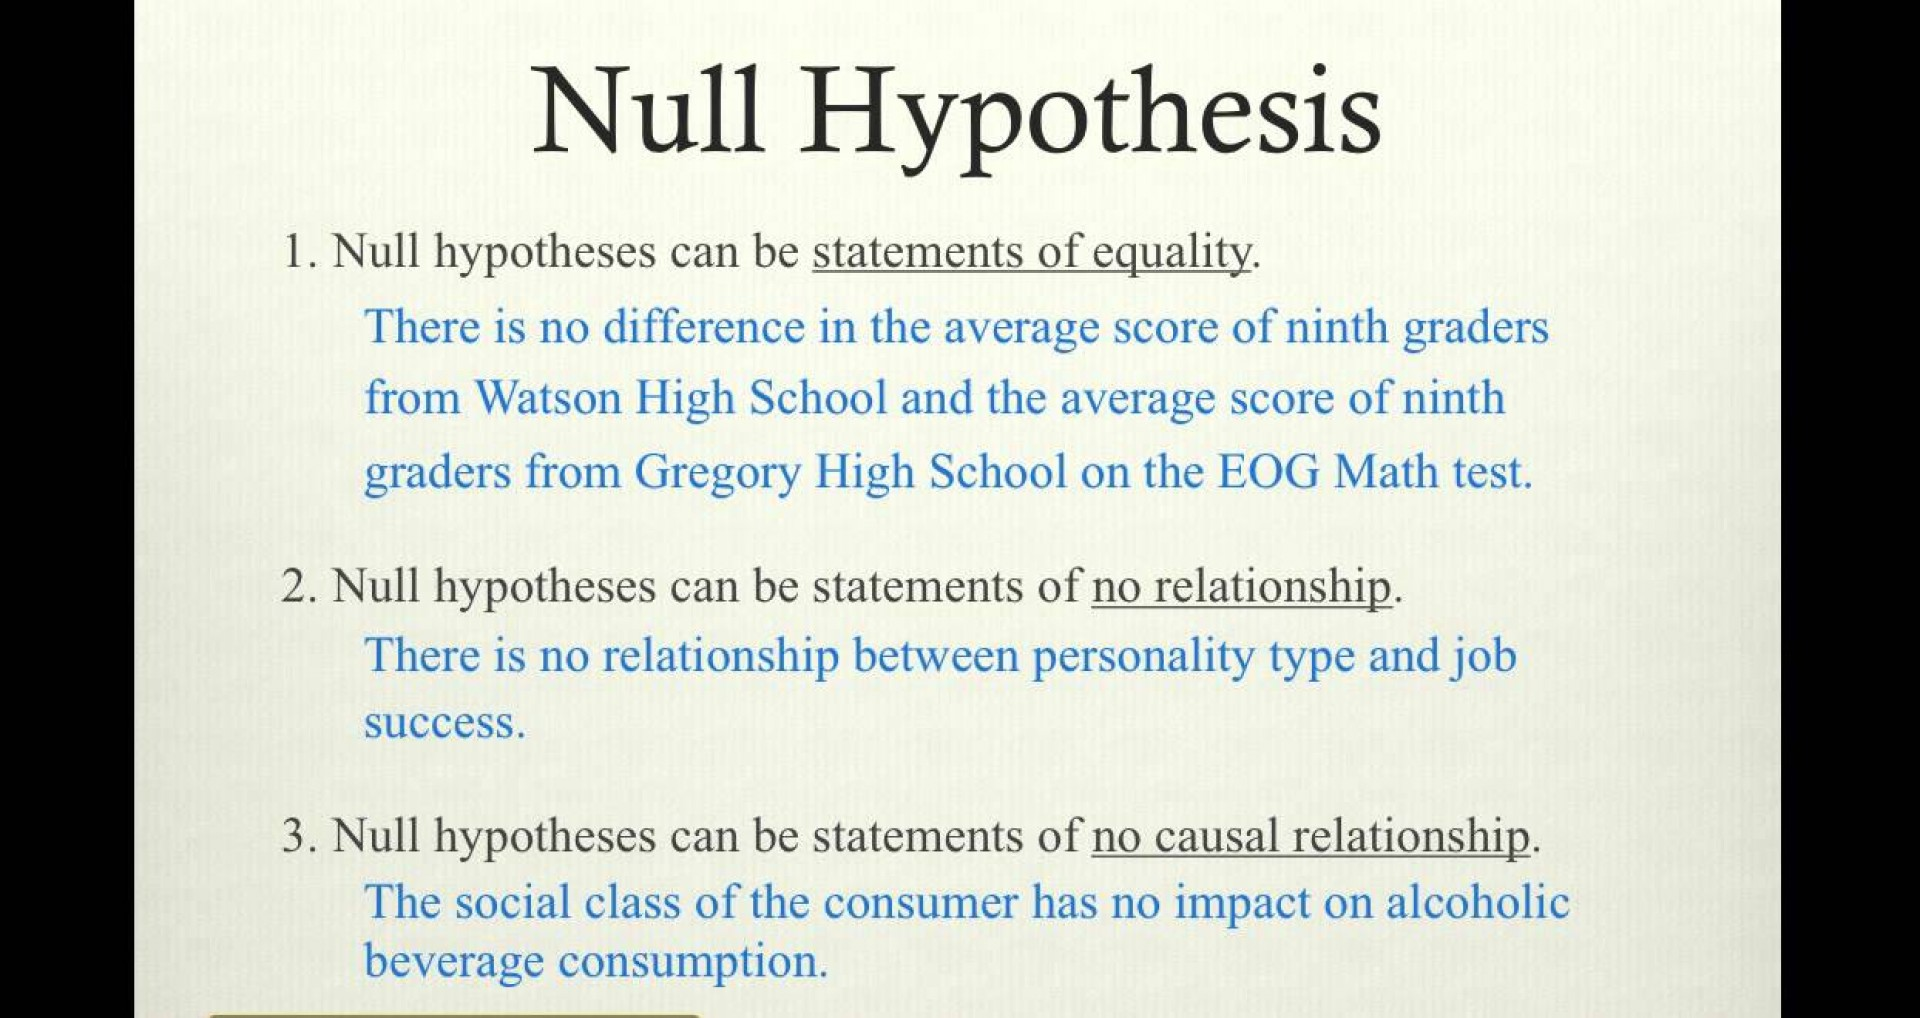 007 Research Paper Null Hypothesis And Alternative In ~ Museumlegs